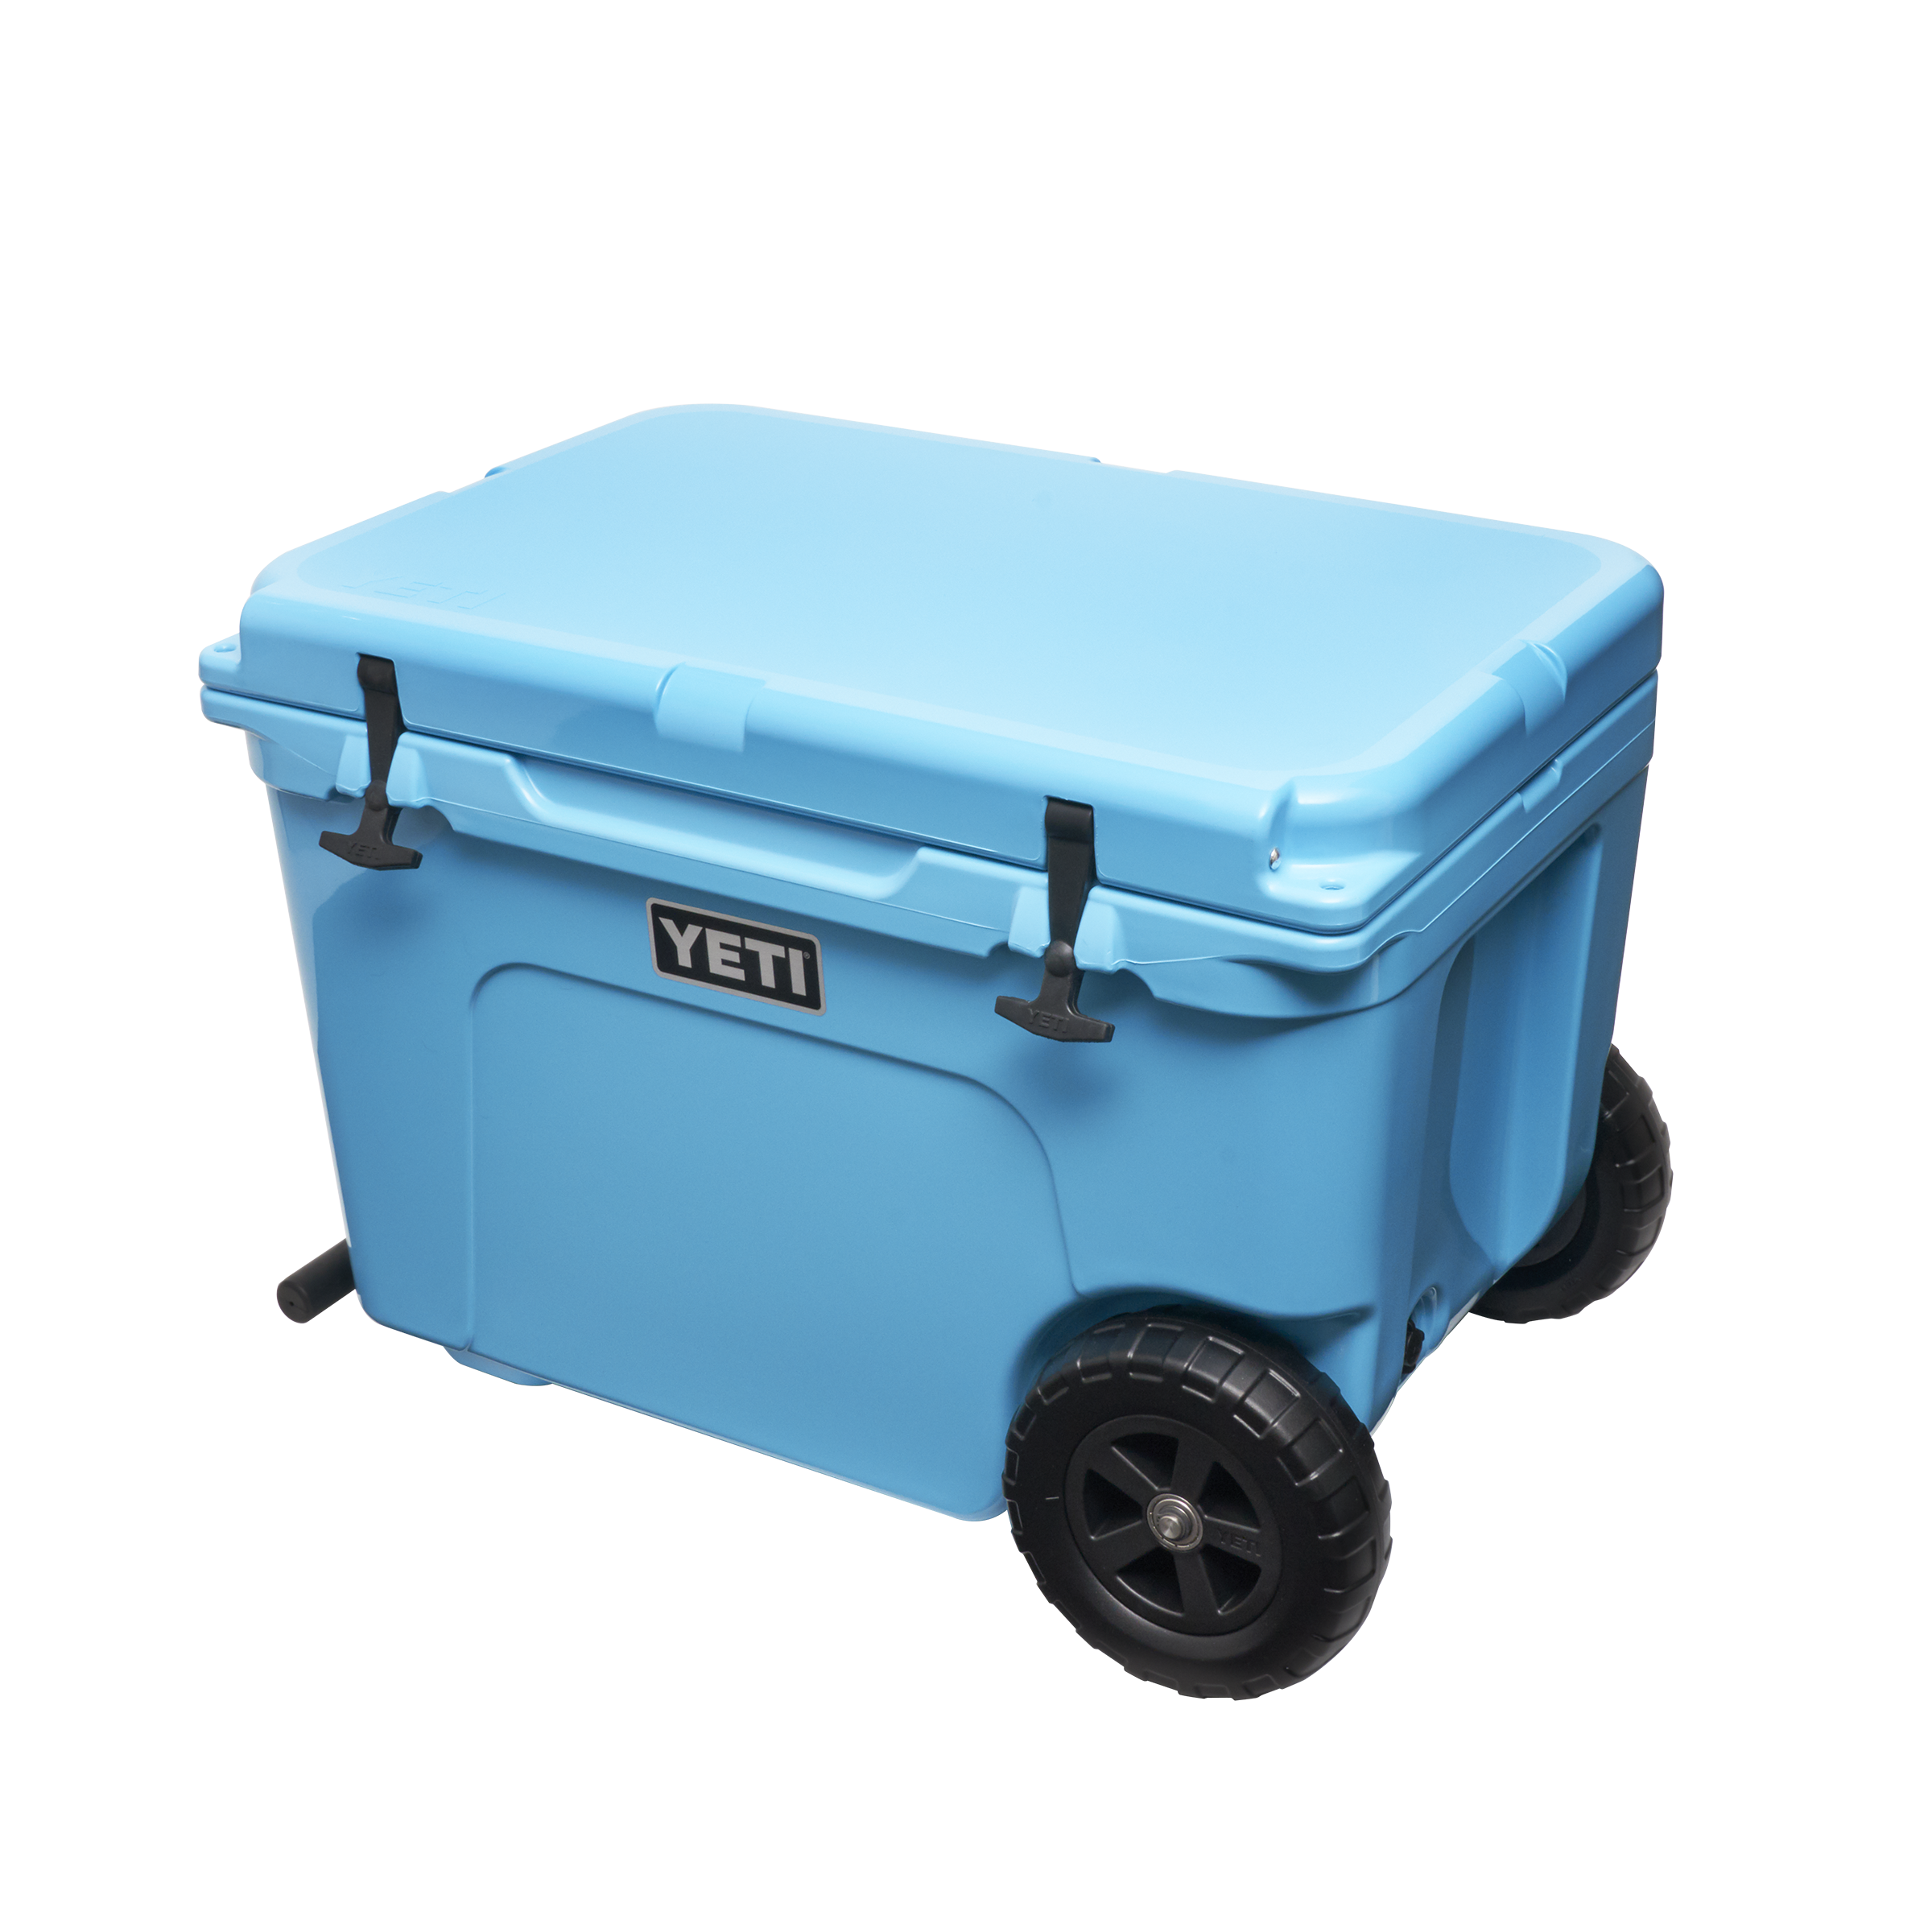 190345-Blue-Reef-Tundra-Photography-Dealers-Tundra-Haul-F-Quarter-Facing-02-Lid-Closed-Handle-Down-2400x2400.png